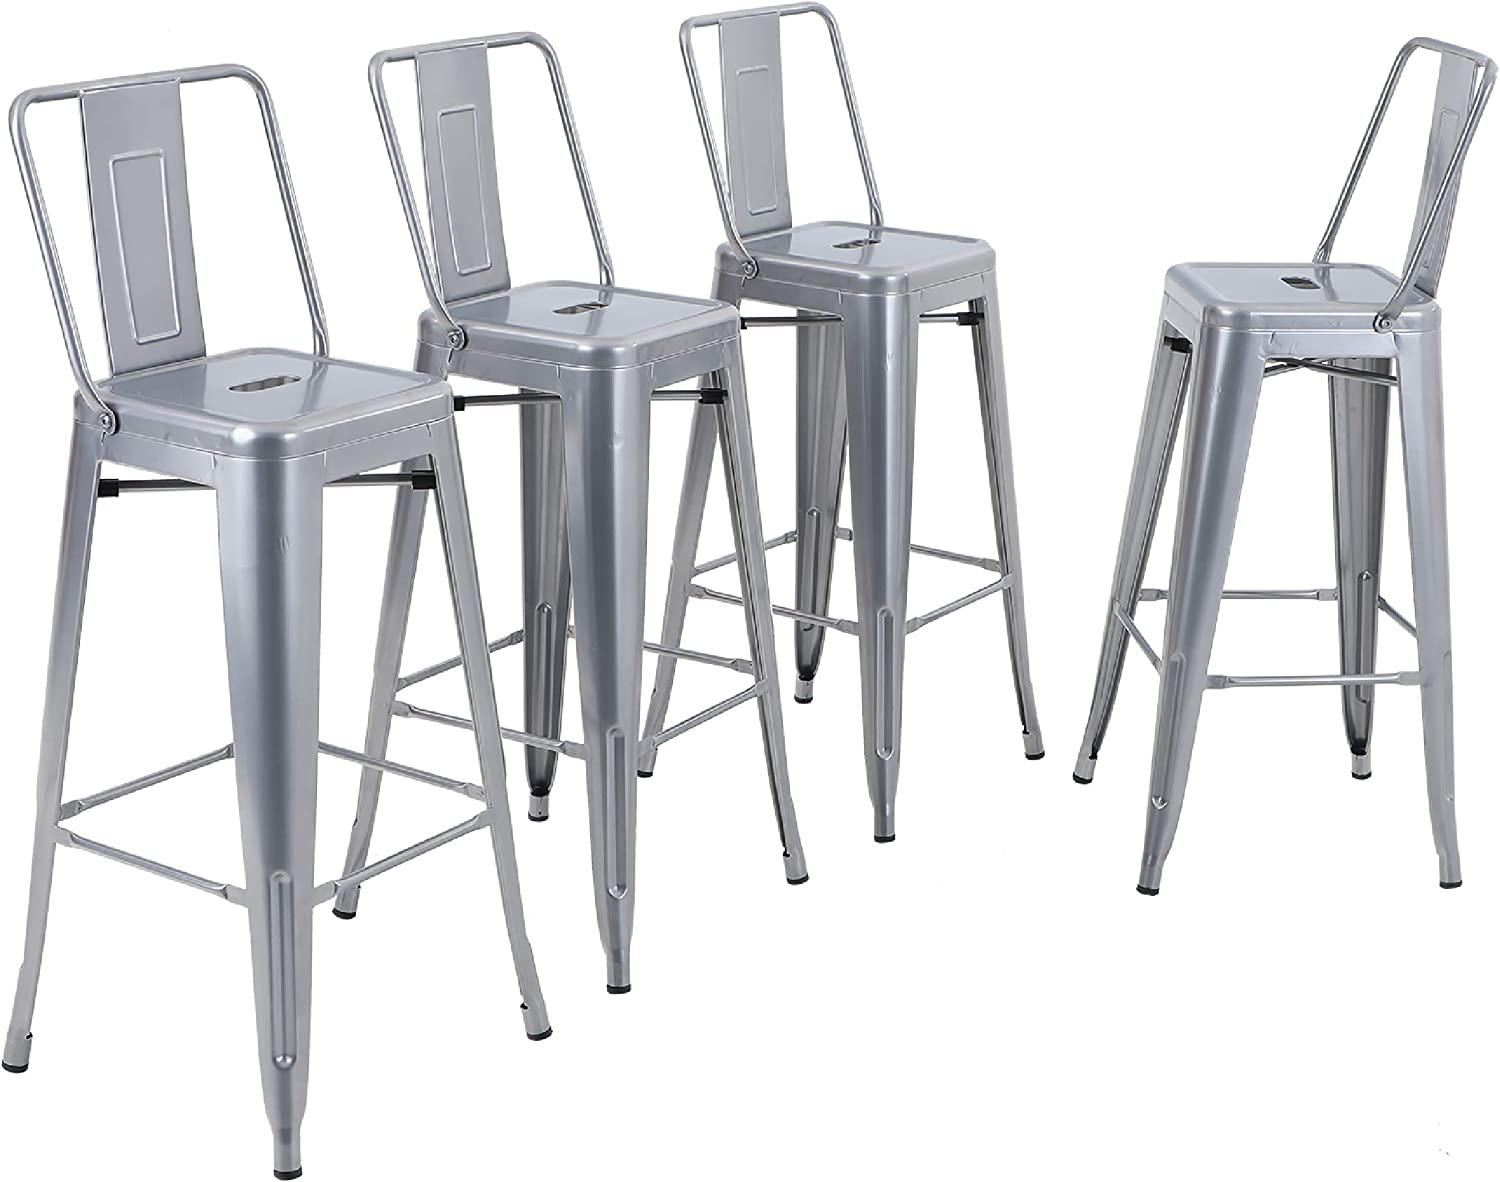 Matte Black Alpha Home Metal Bar Stool 30 Inches Counter Height Stools Set Of 4 With Low Back Bar Chair For Indoor Outdoor Kitchen Weight Capacity 350 Lb Patio Lawn Garden Chairs